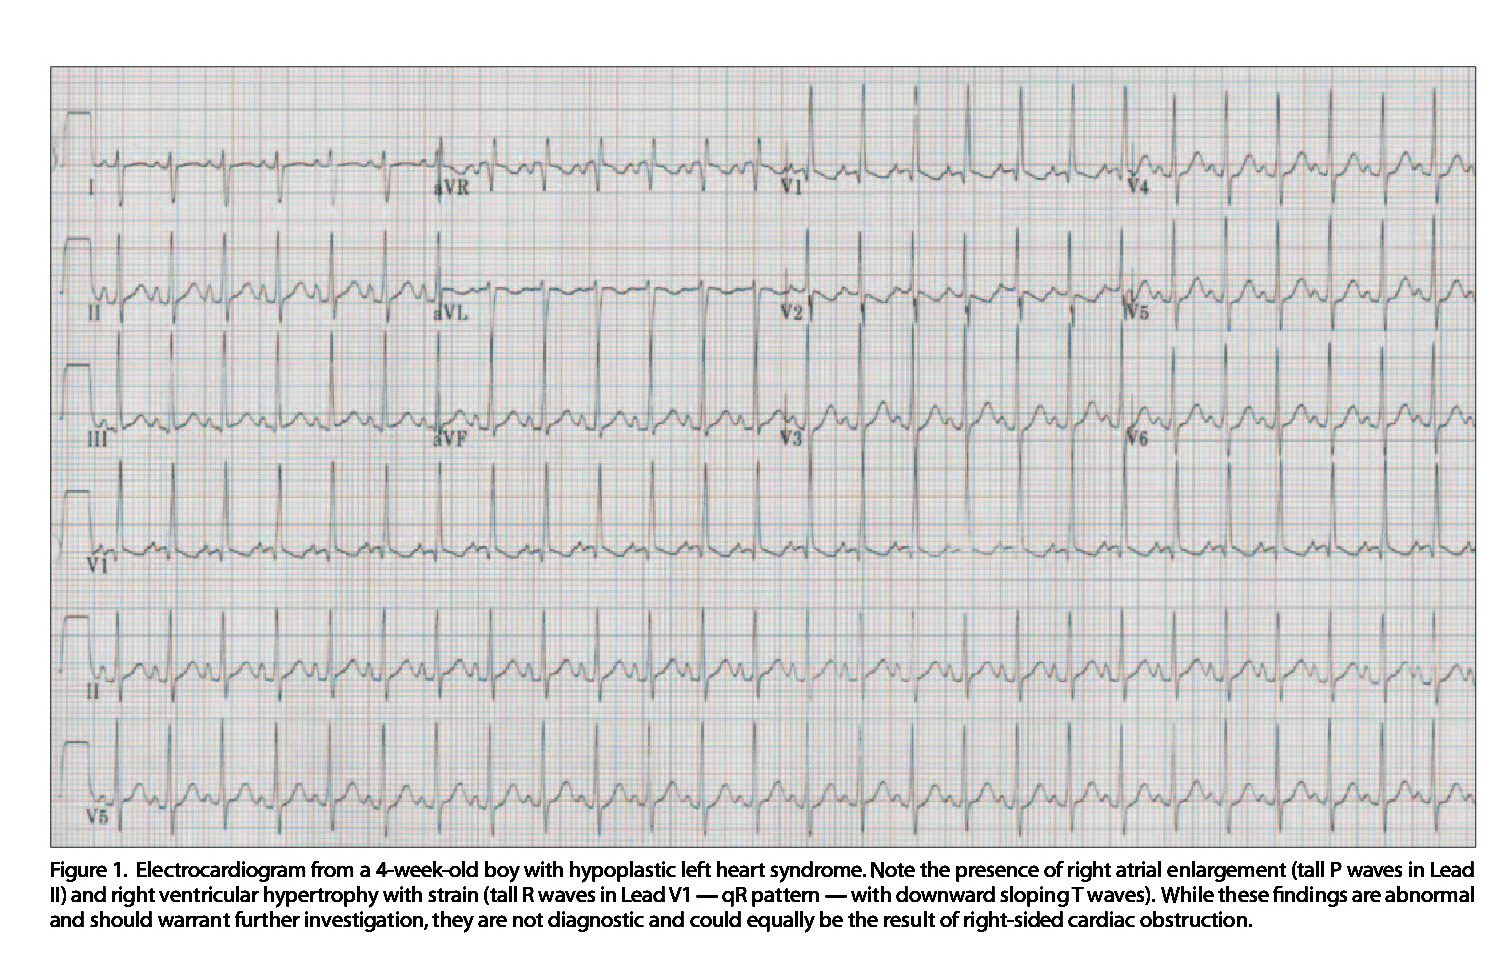 Figure 1. Electrocardiogram from a 4-week-old boy with hypoplastic left heart syndrome. Note the presence of right atrial enlargement (tall P waves in Lead II) and right ventricular hypertrophy with strain (tall Rwavesin Lead V1 - qR pattern - with downward sloping T waves). While these findings areabnormal and should warrant further investigation, they are not diagnostic and could equally be the result of right-sided cardiac obstruction.